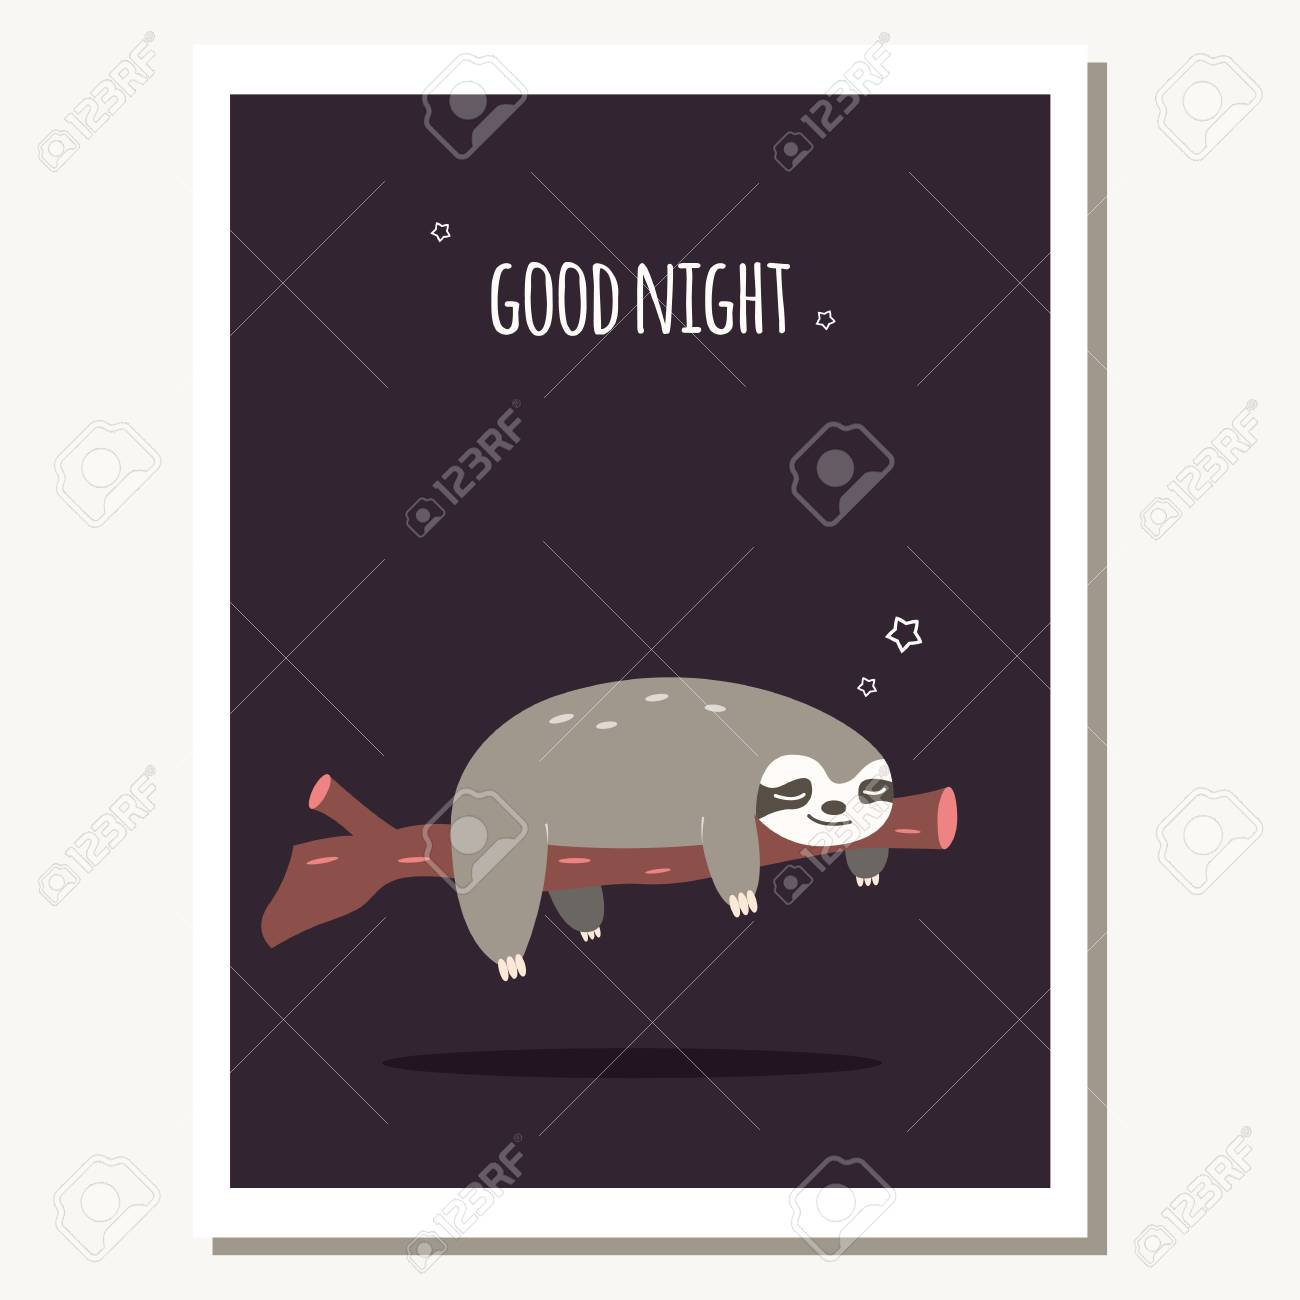 Greeting Card With Cute Lazy Sloth And Text Message Vector